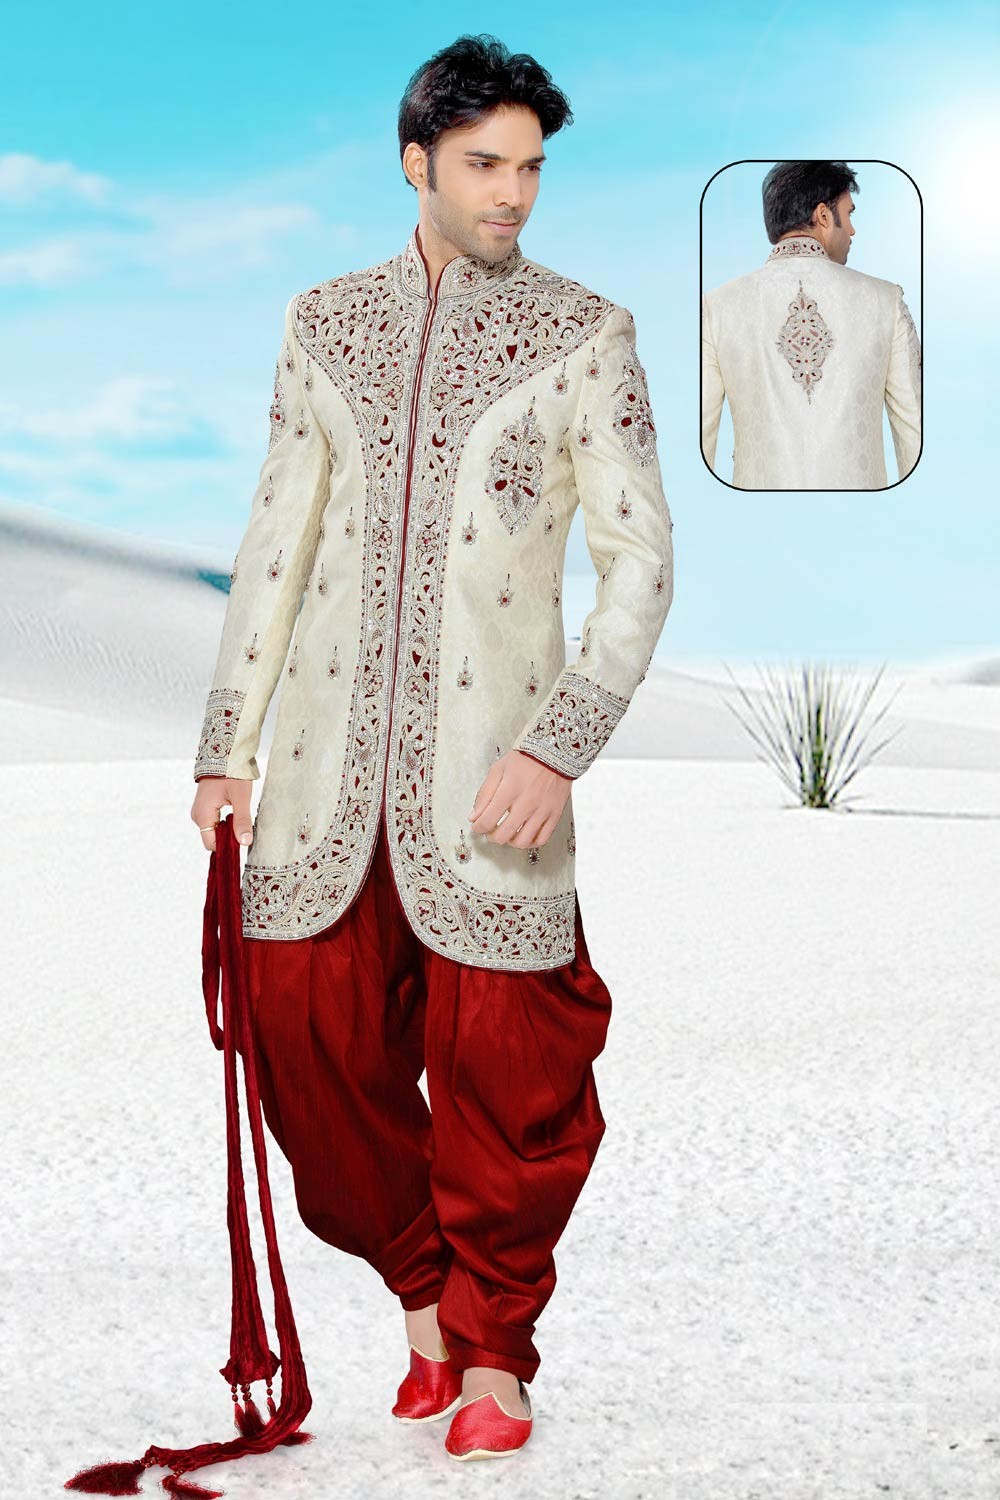 Men's Striking Cream & Maroon Men's Indo Western